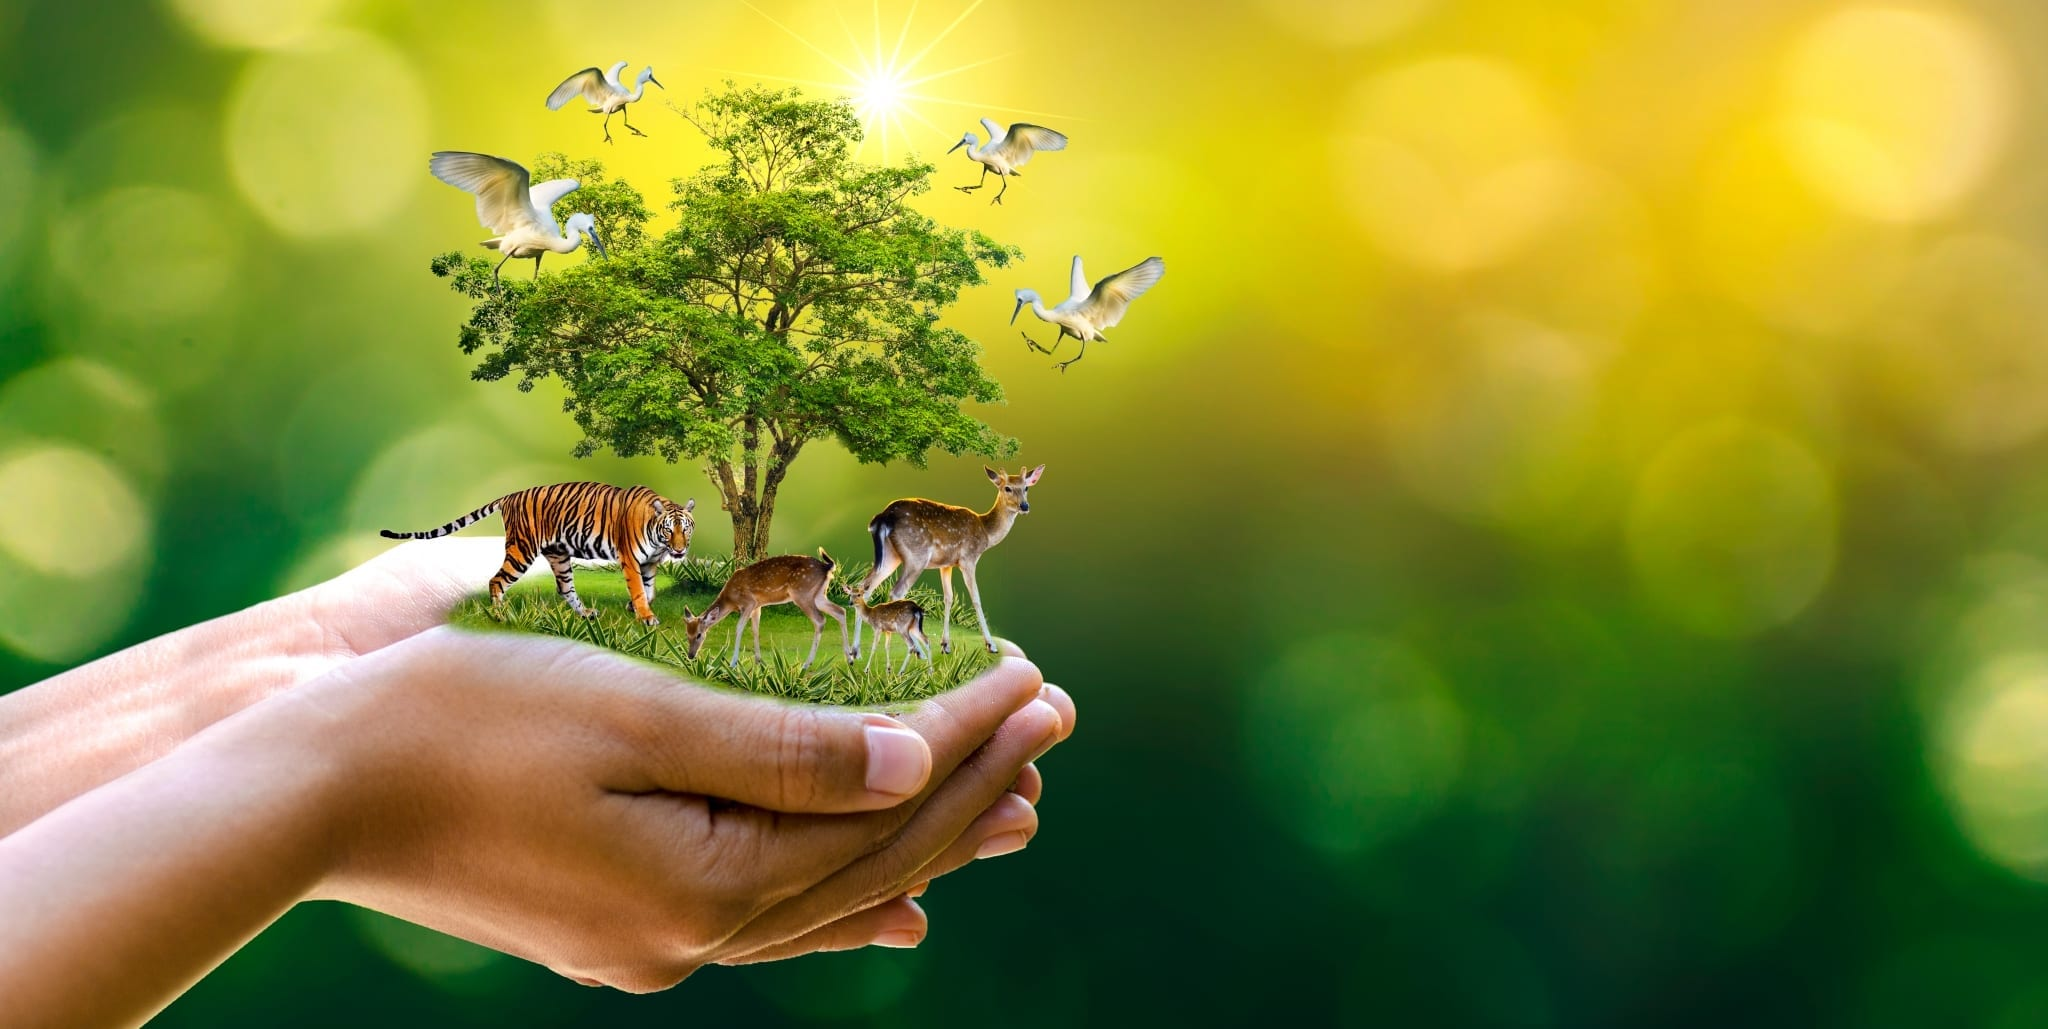 Certificate of Wildlife Conservation